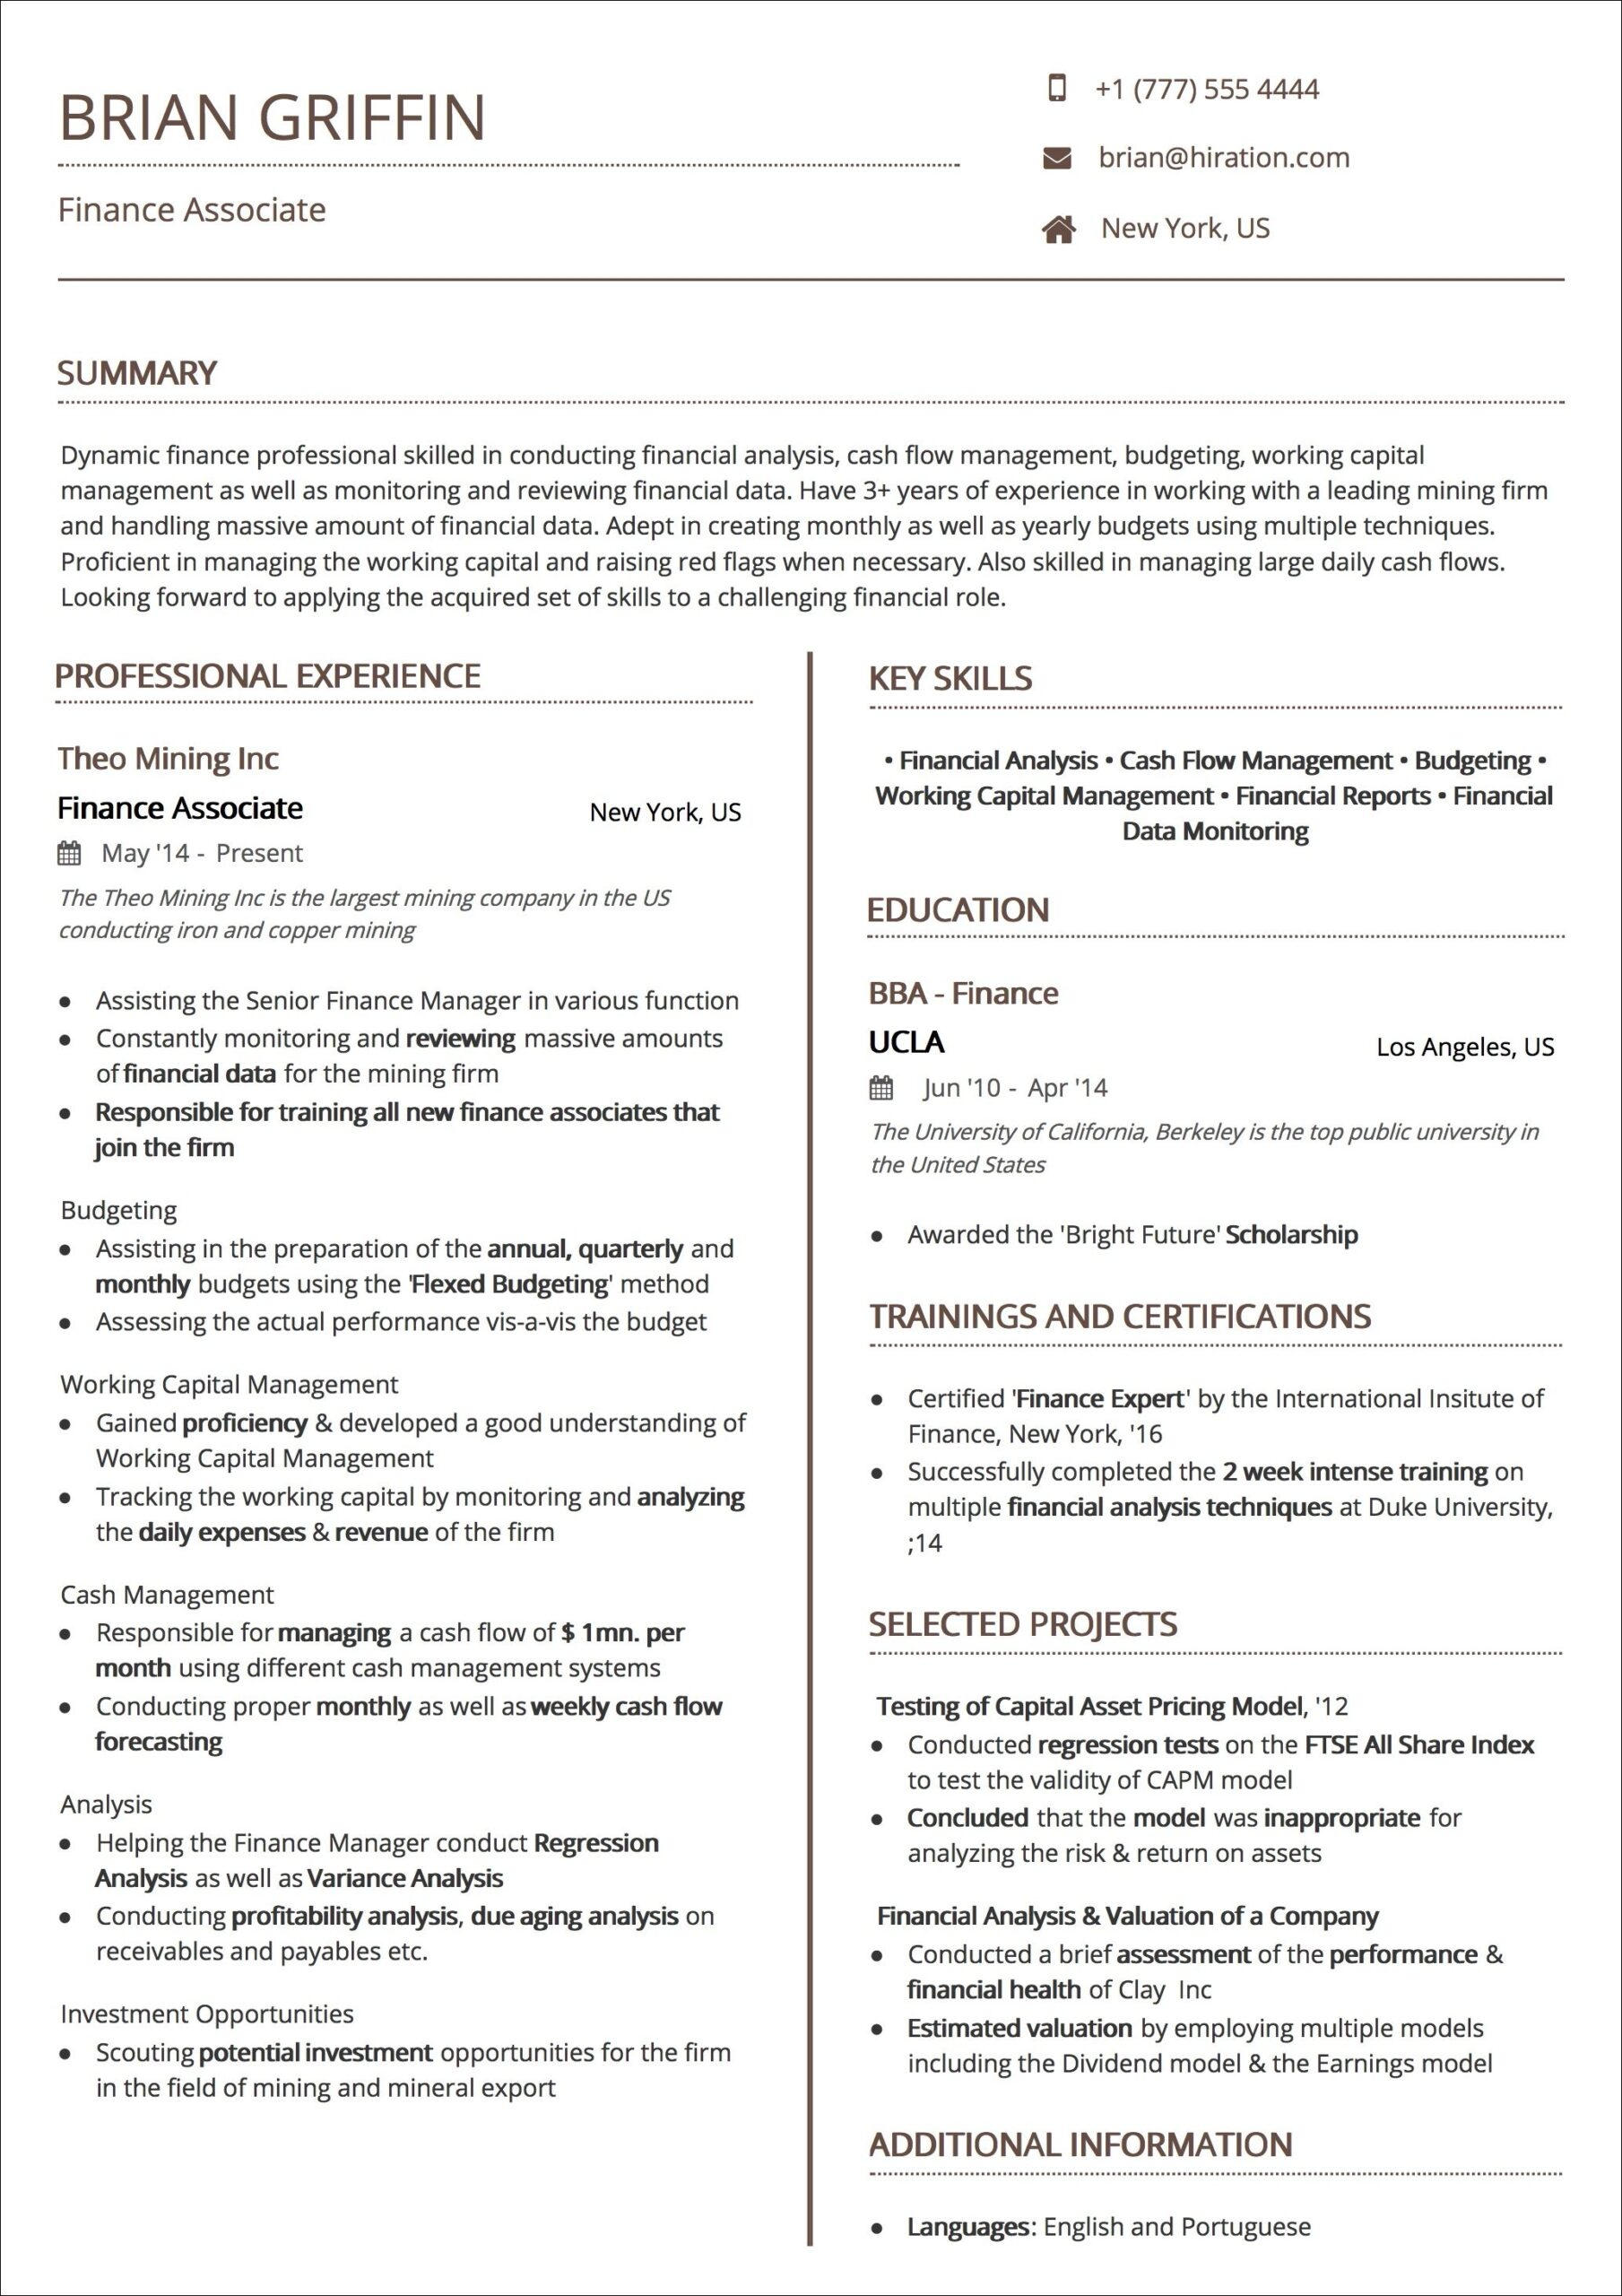 resume templates the guide to choosing best template ats compatible formats uniform army Resume Ats Compatible Resume Formats